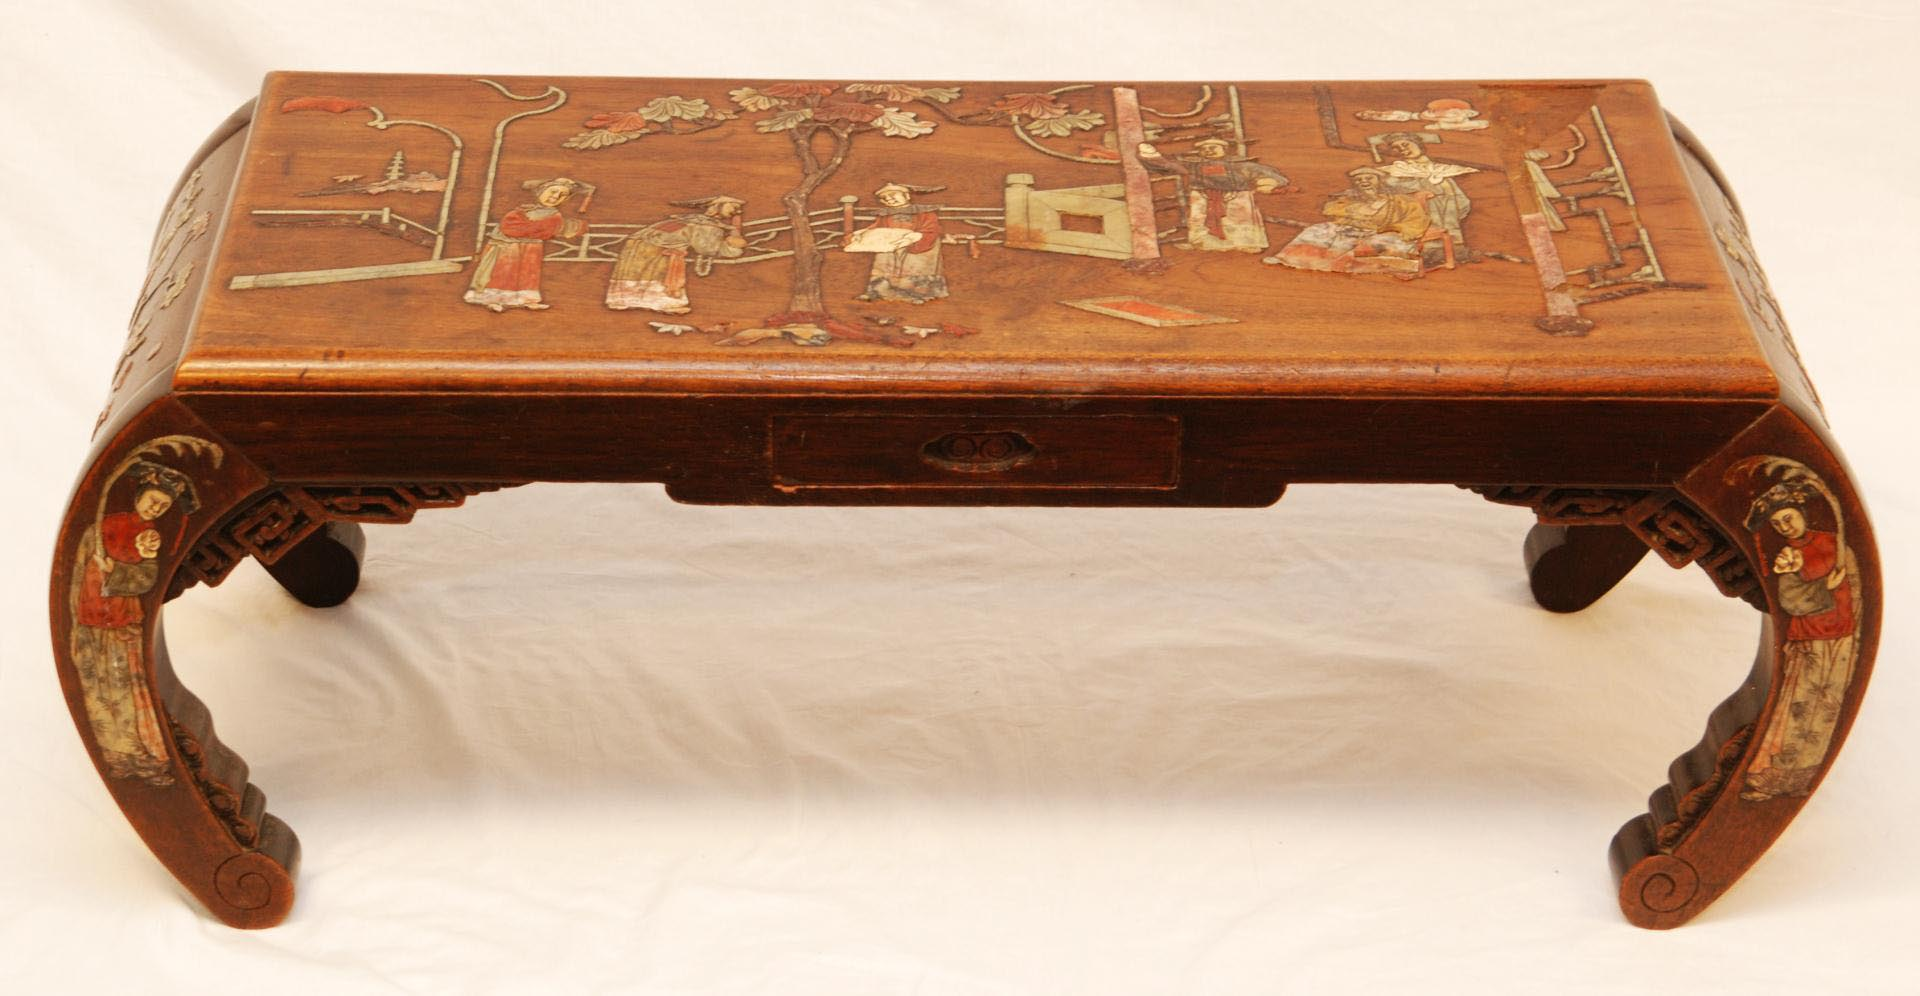 Antique chinese coffee table coffee table design ideas Coffee table antique